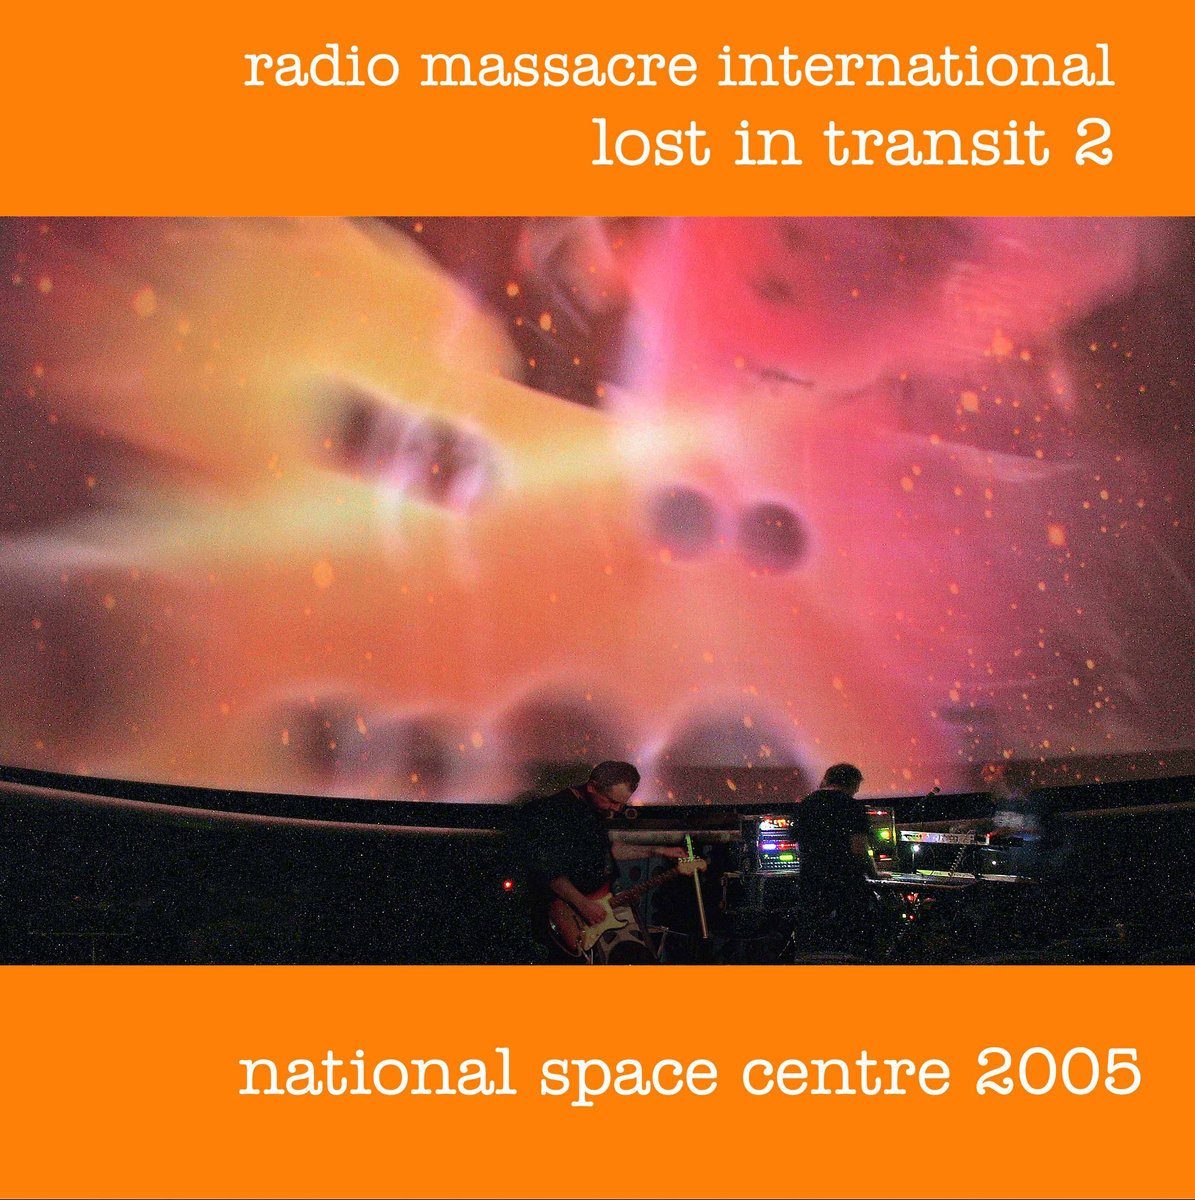 lost in transit 2: national space centre 2005